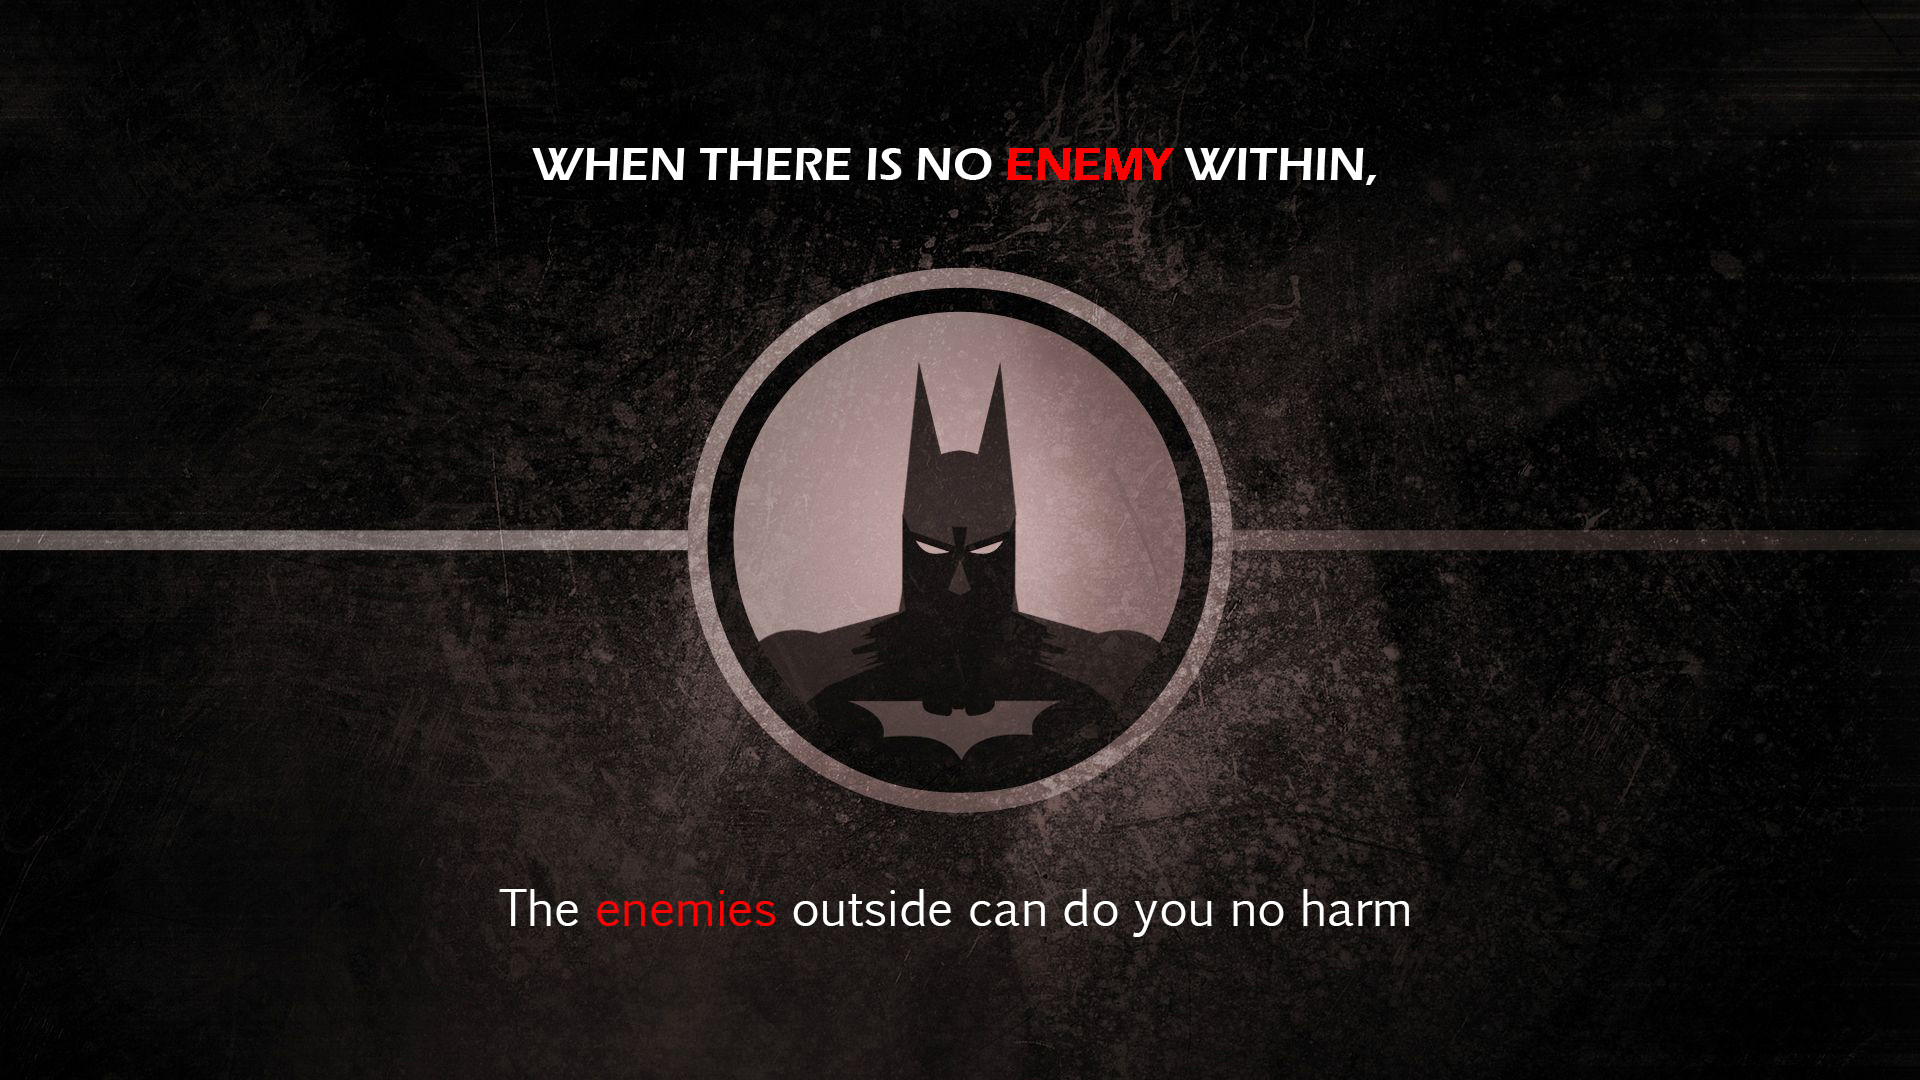 Inspirational Quote Wallpaper For Surface Pro 4 Batman Quote 1 Full Hd Wallpaper And Background Image